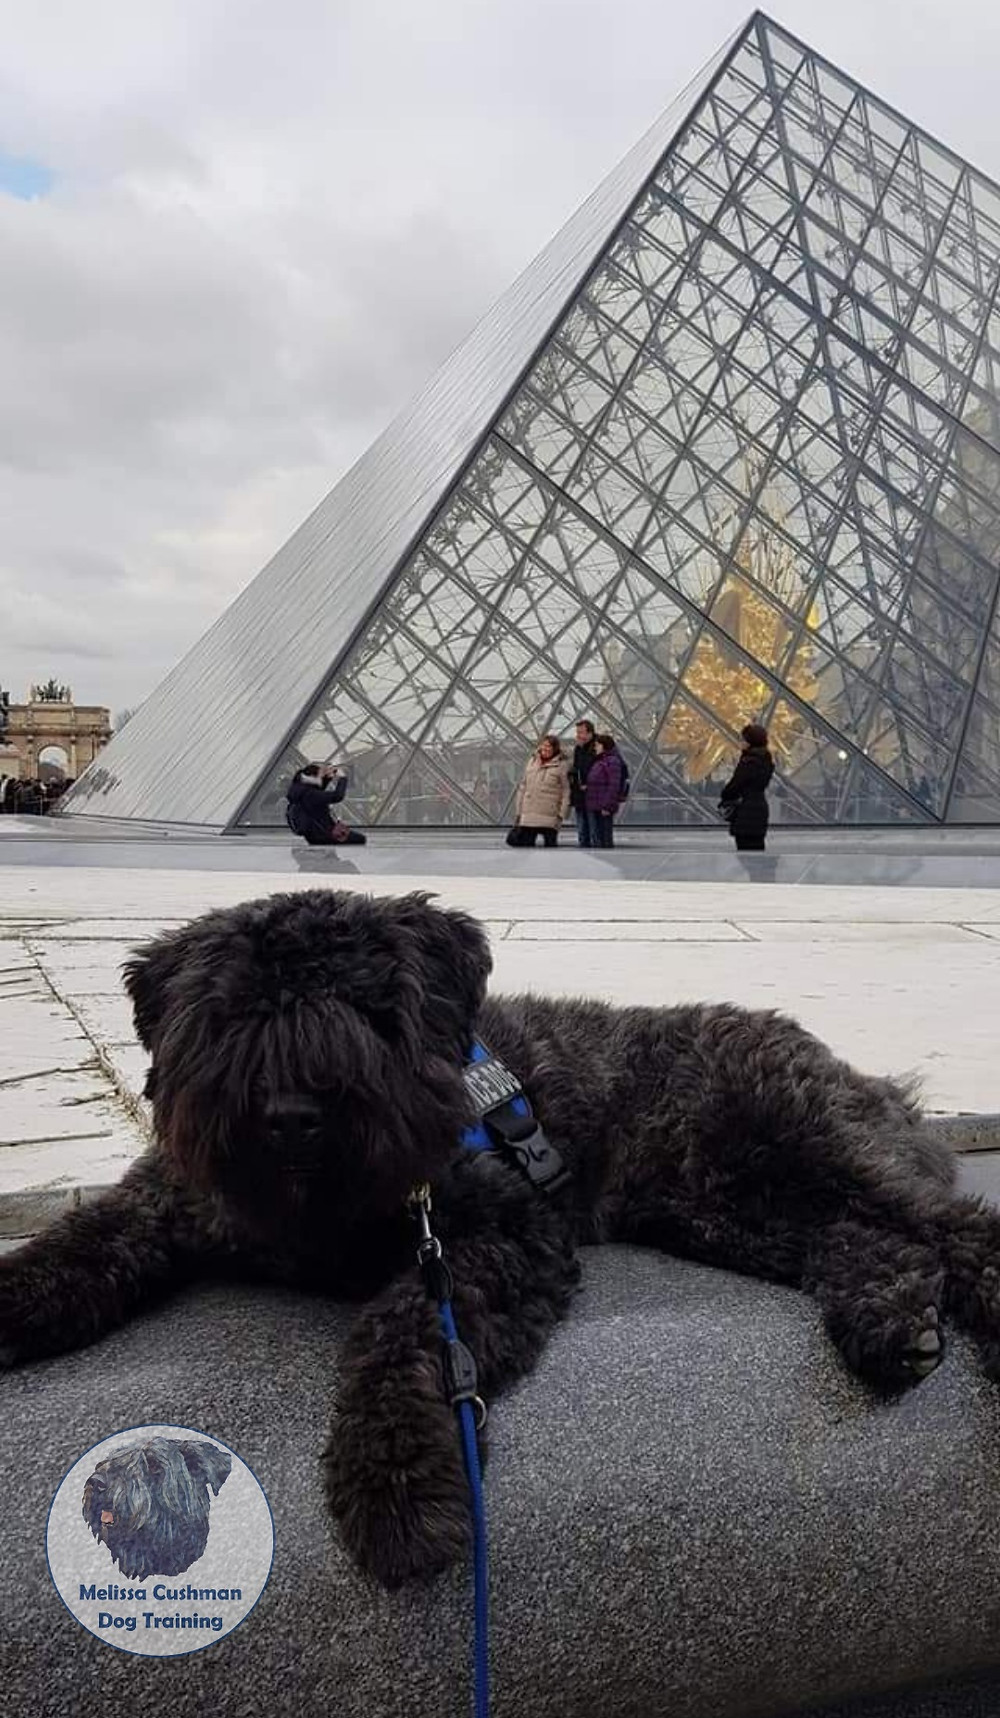 Gunther a Bouvier Des Flandres Gluten Detection Service Dog laying down in front of the Louvre in Paris, France